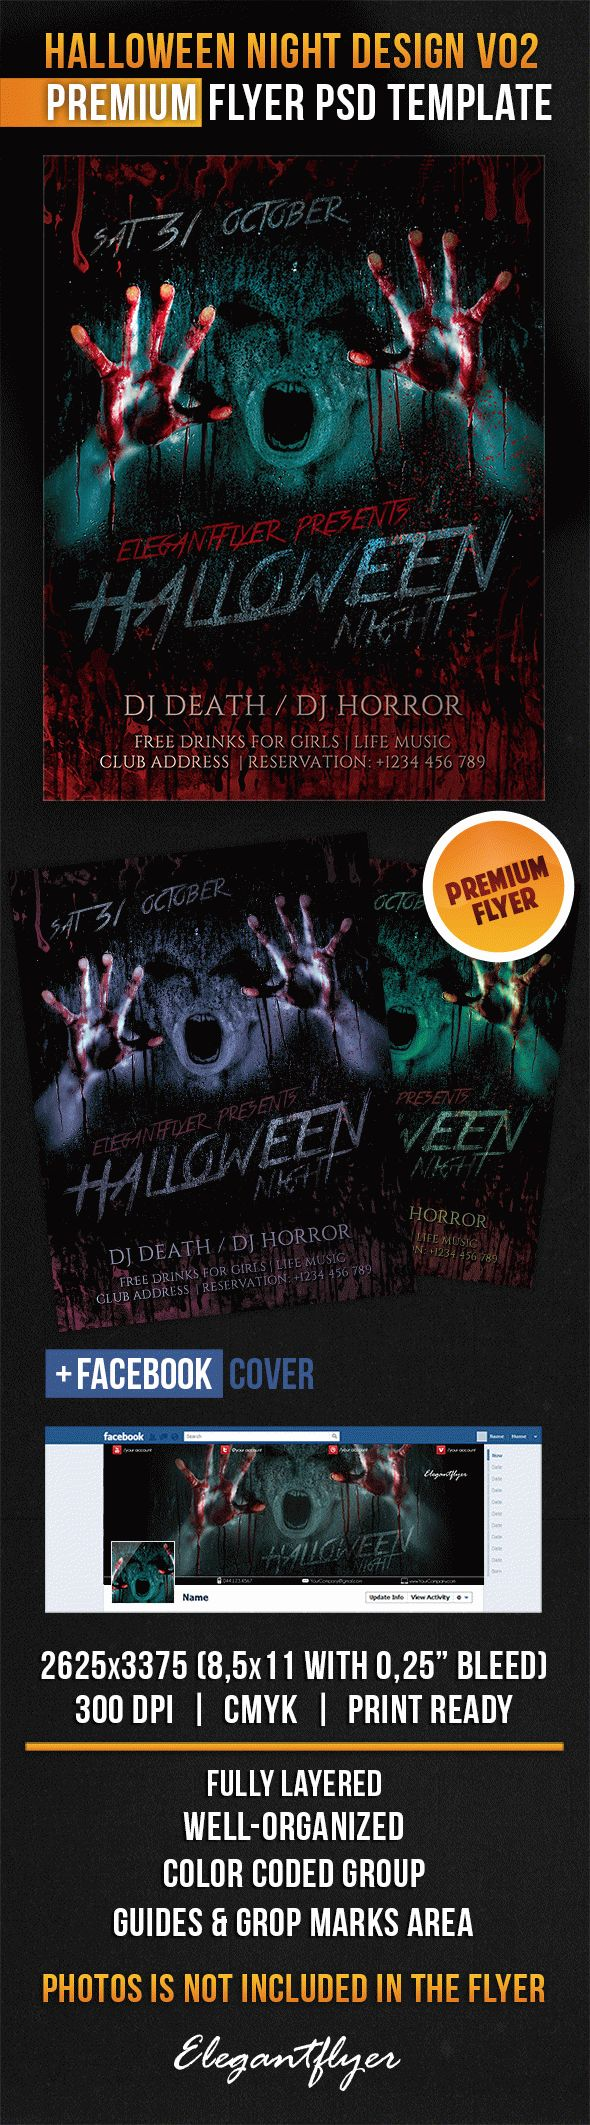 Halloween Night Design V02 – Flyer PSD Template + Facebook Cover